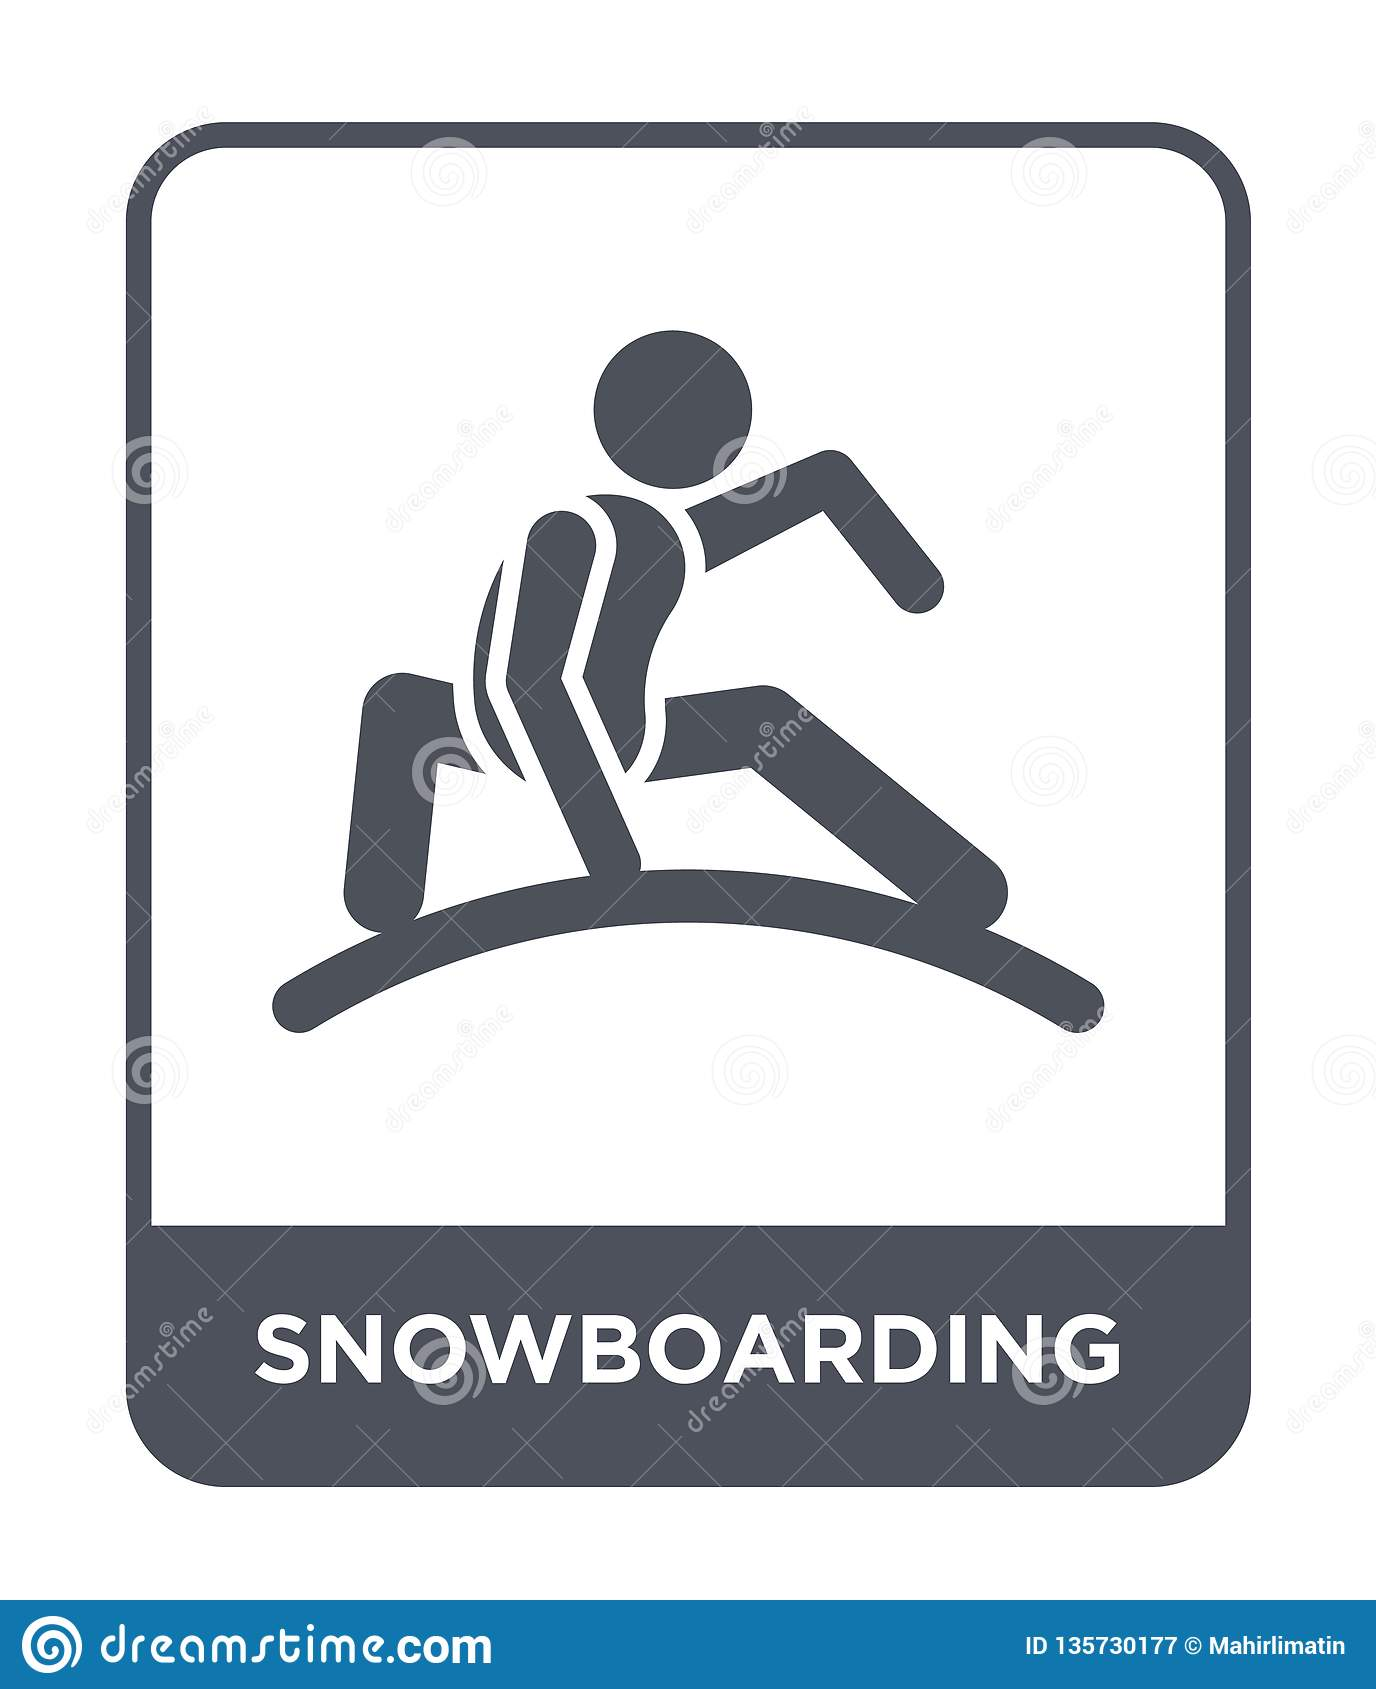 snowboarding icon in trendy design style. snowboarding icon isolated on white background. snowboarding vector icon simple and